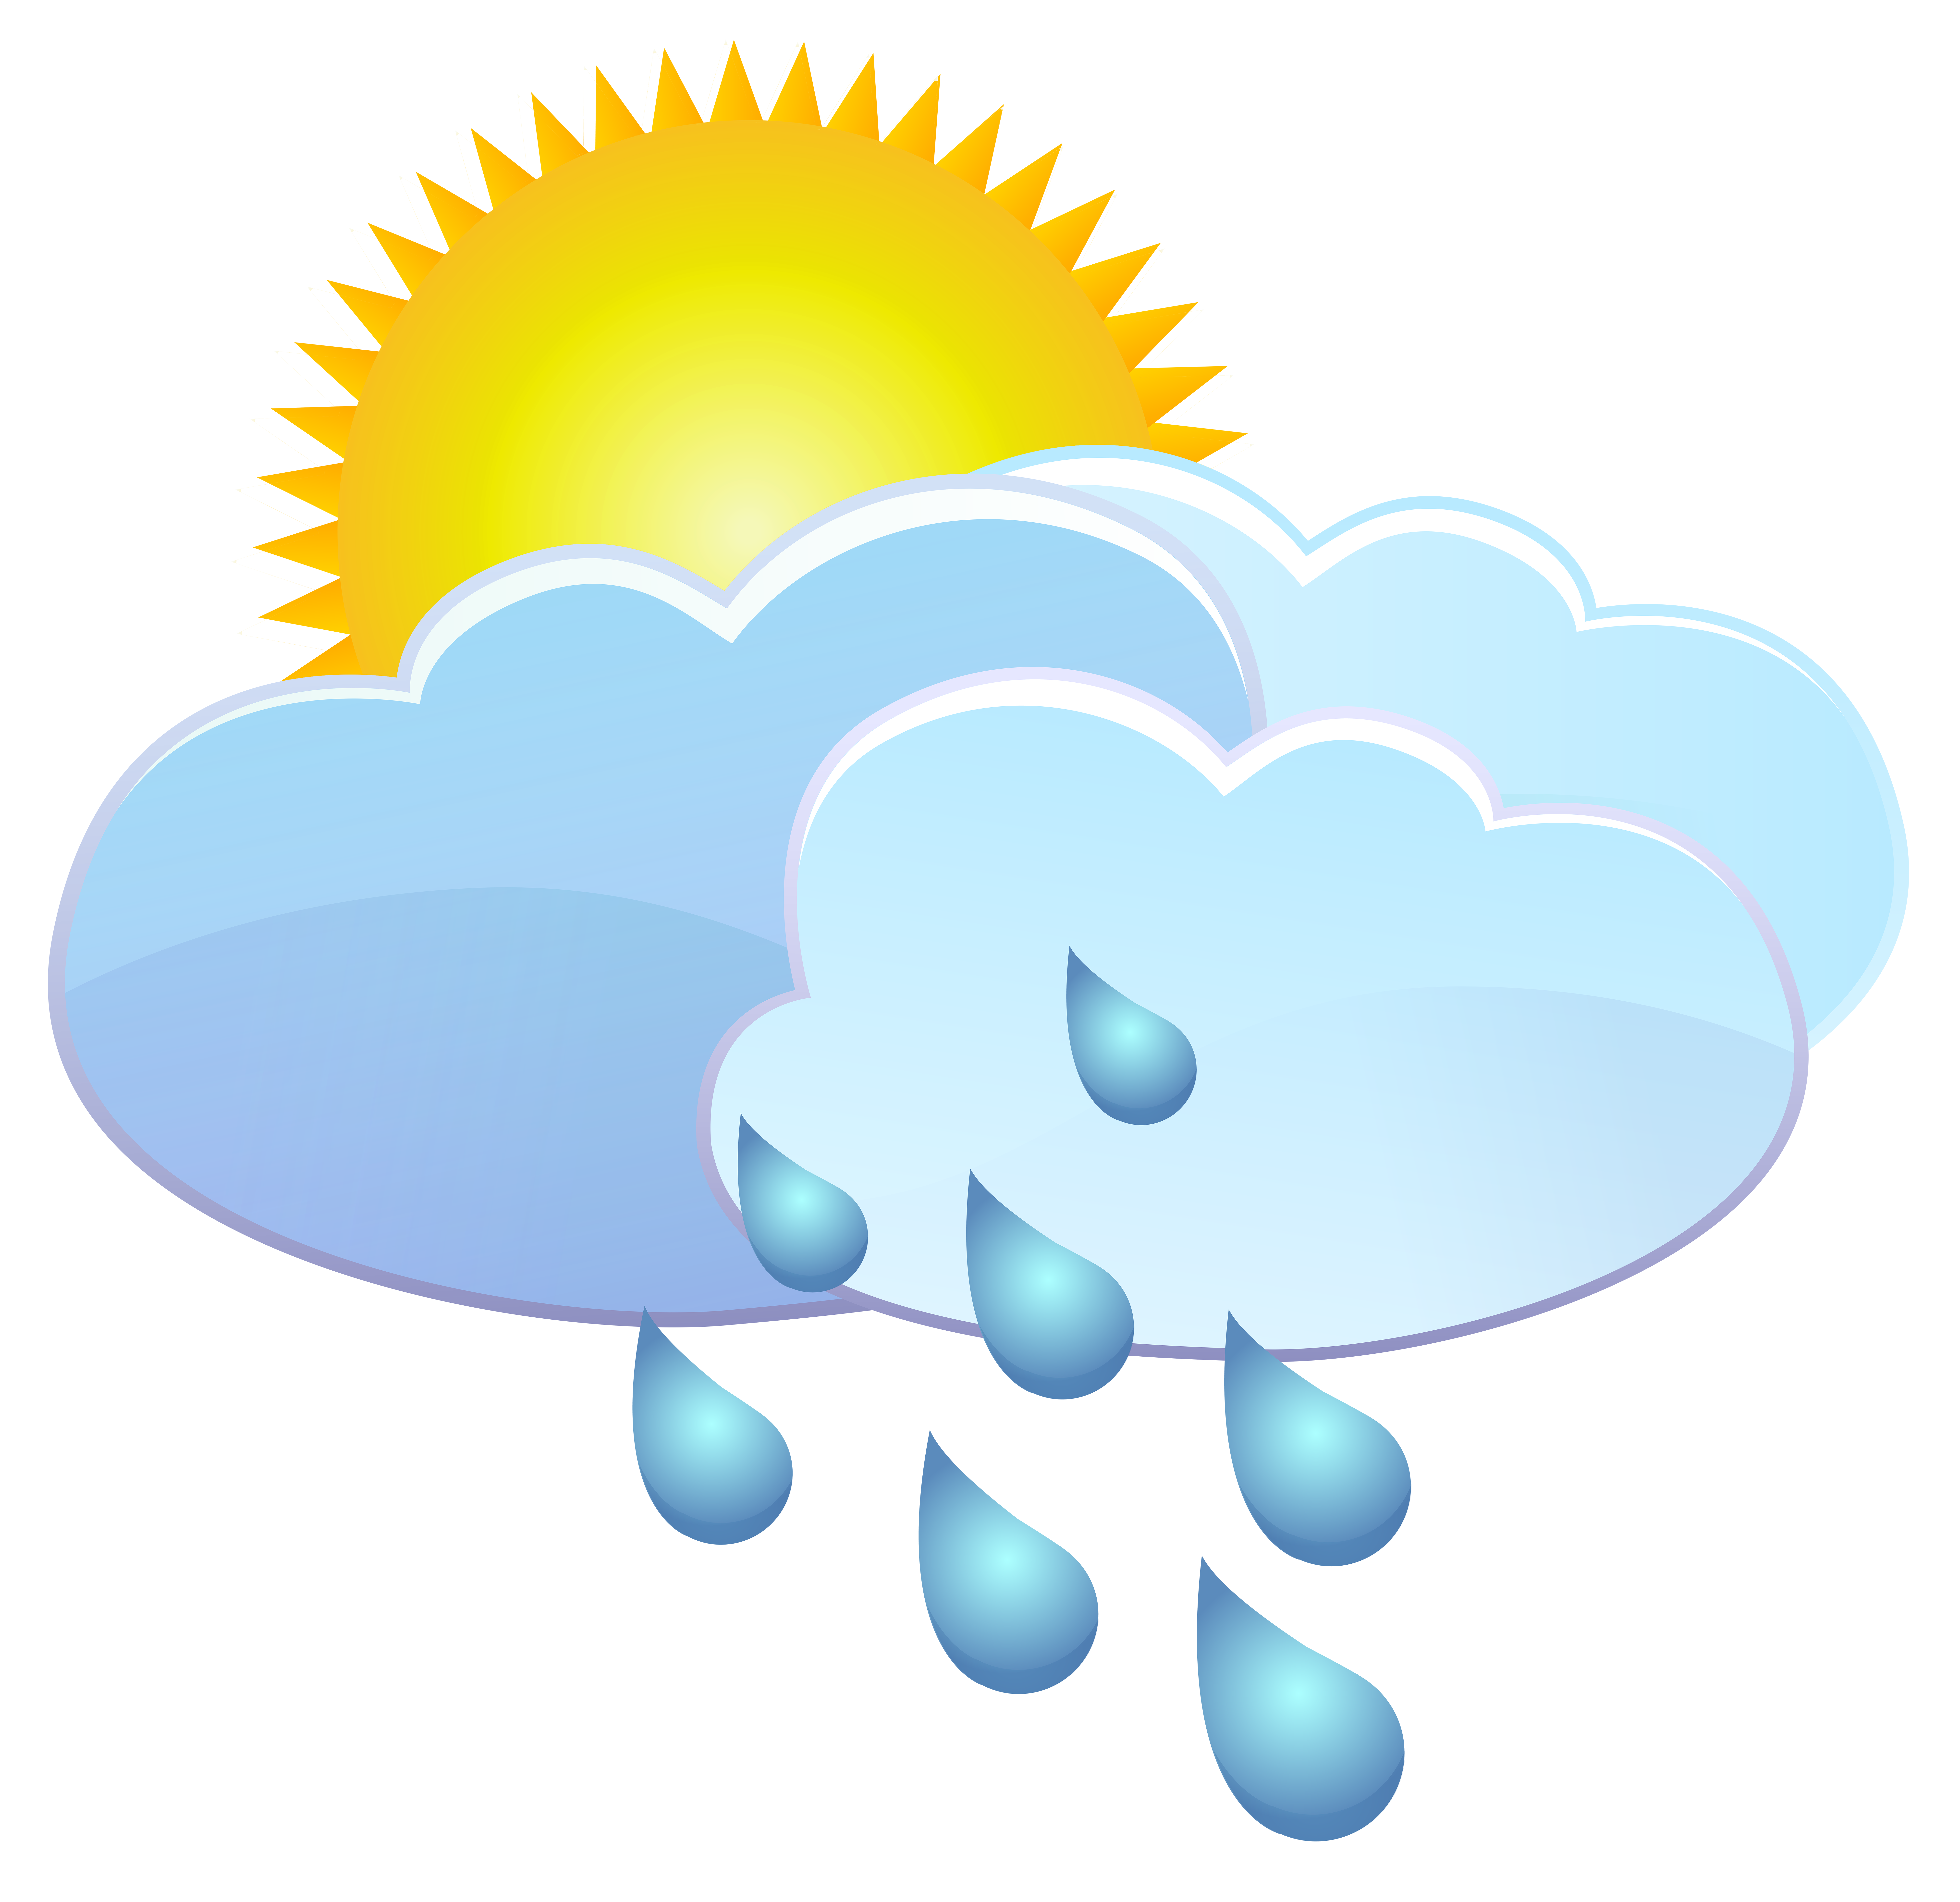 Sun and rain drops. Clouds clipart weather